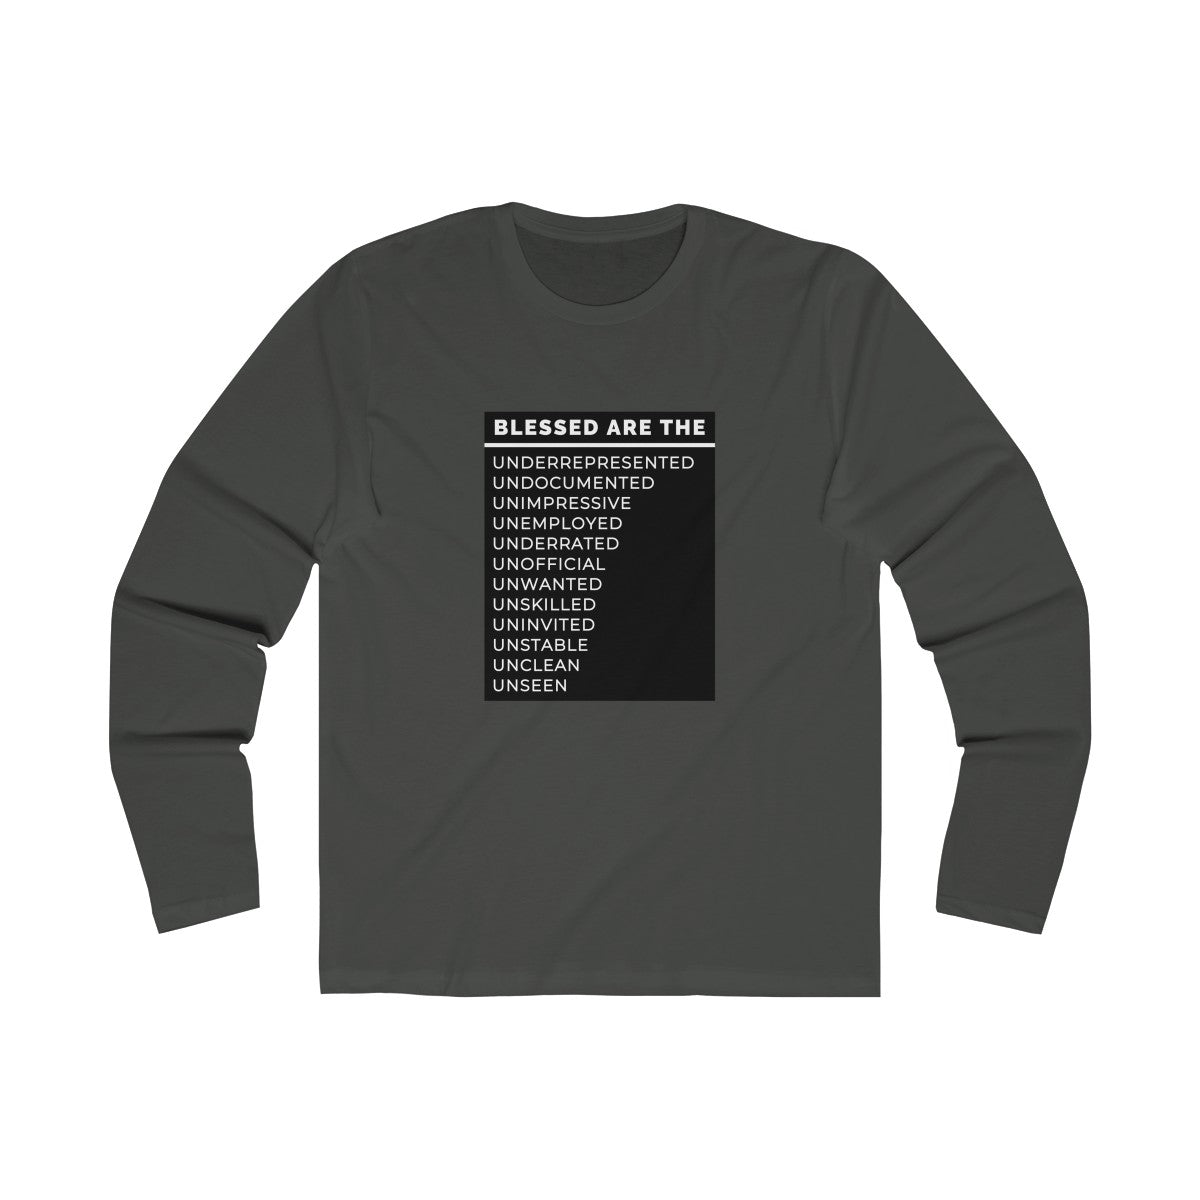 Blessed Are The Men's Long Sleeve Crew Tee